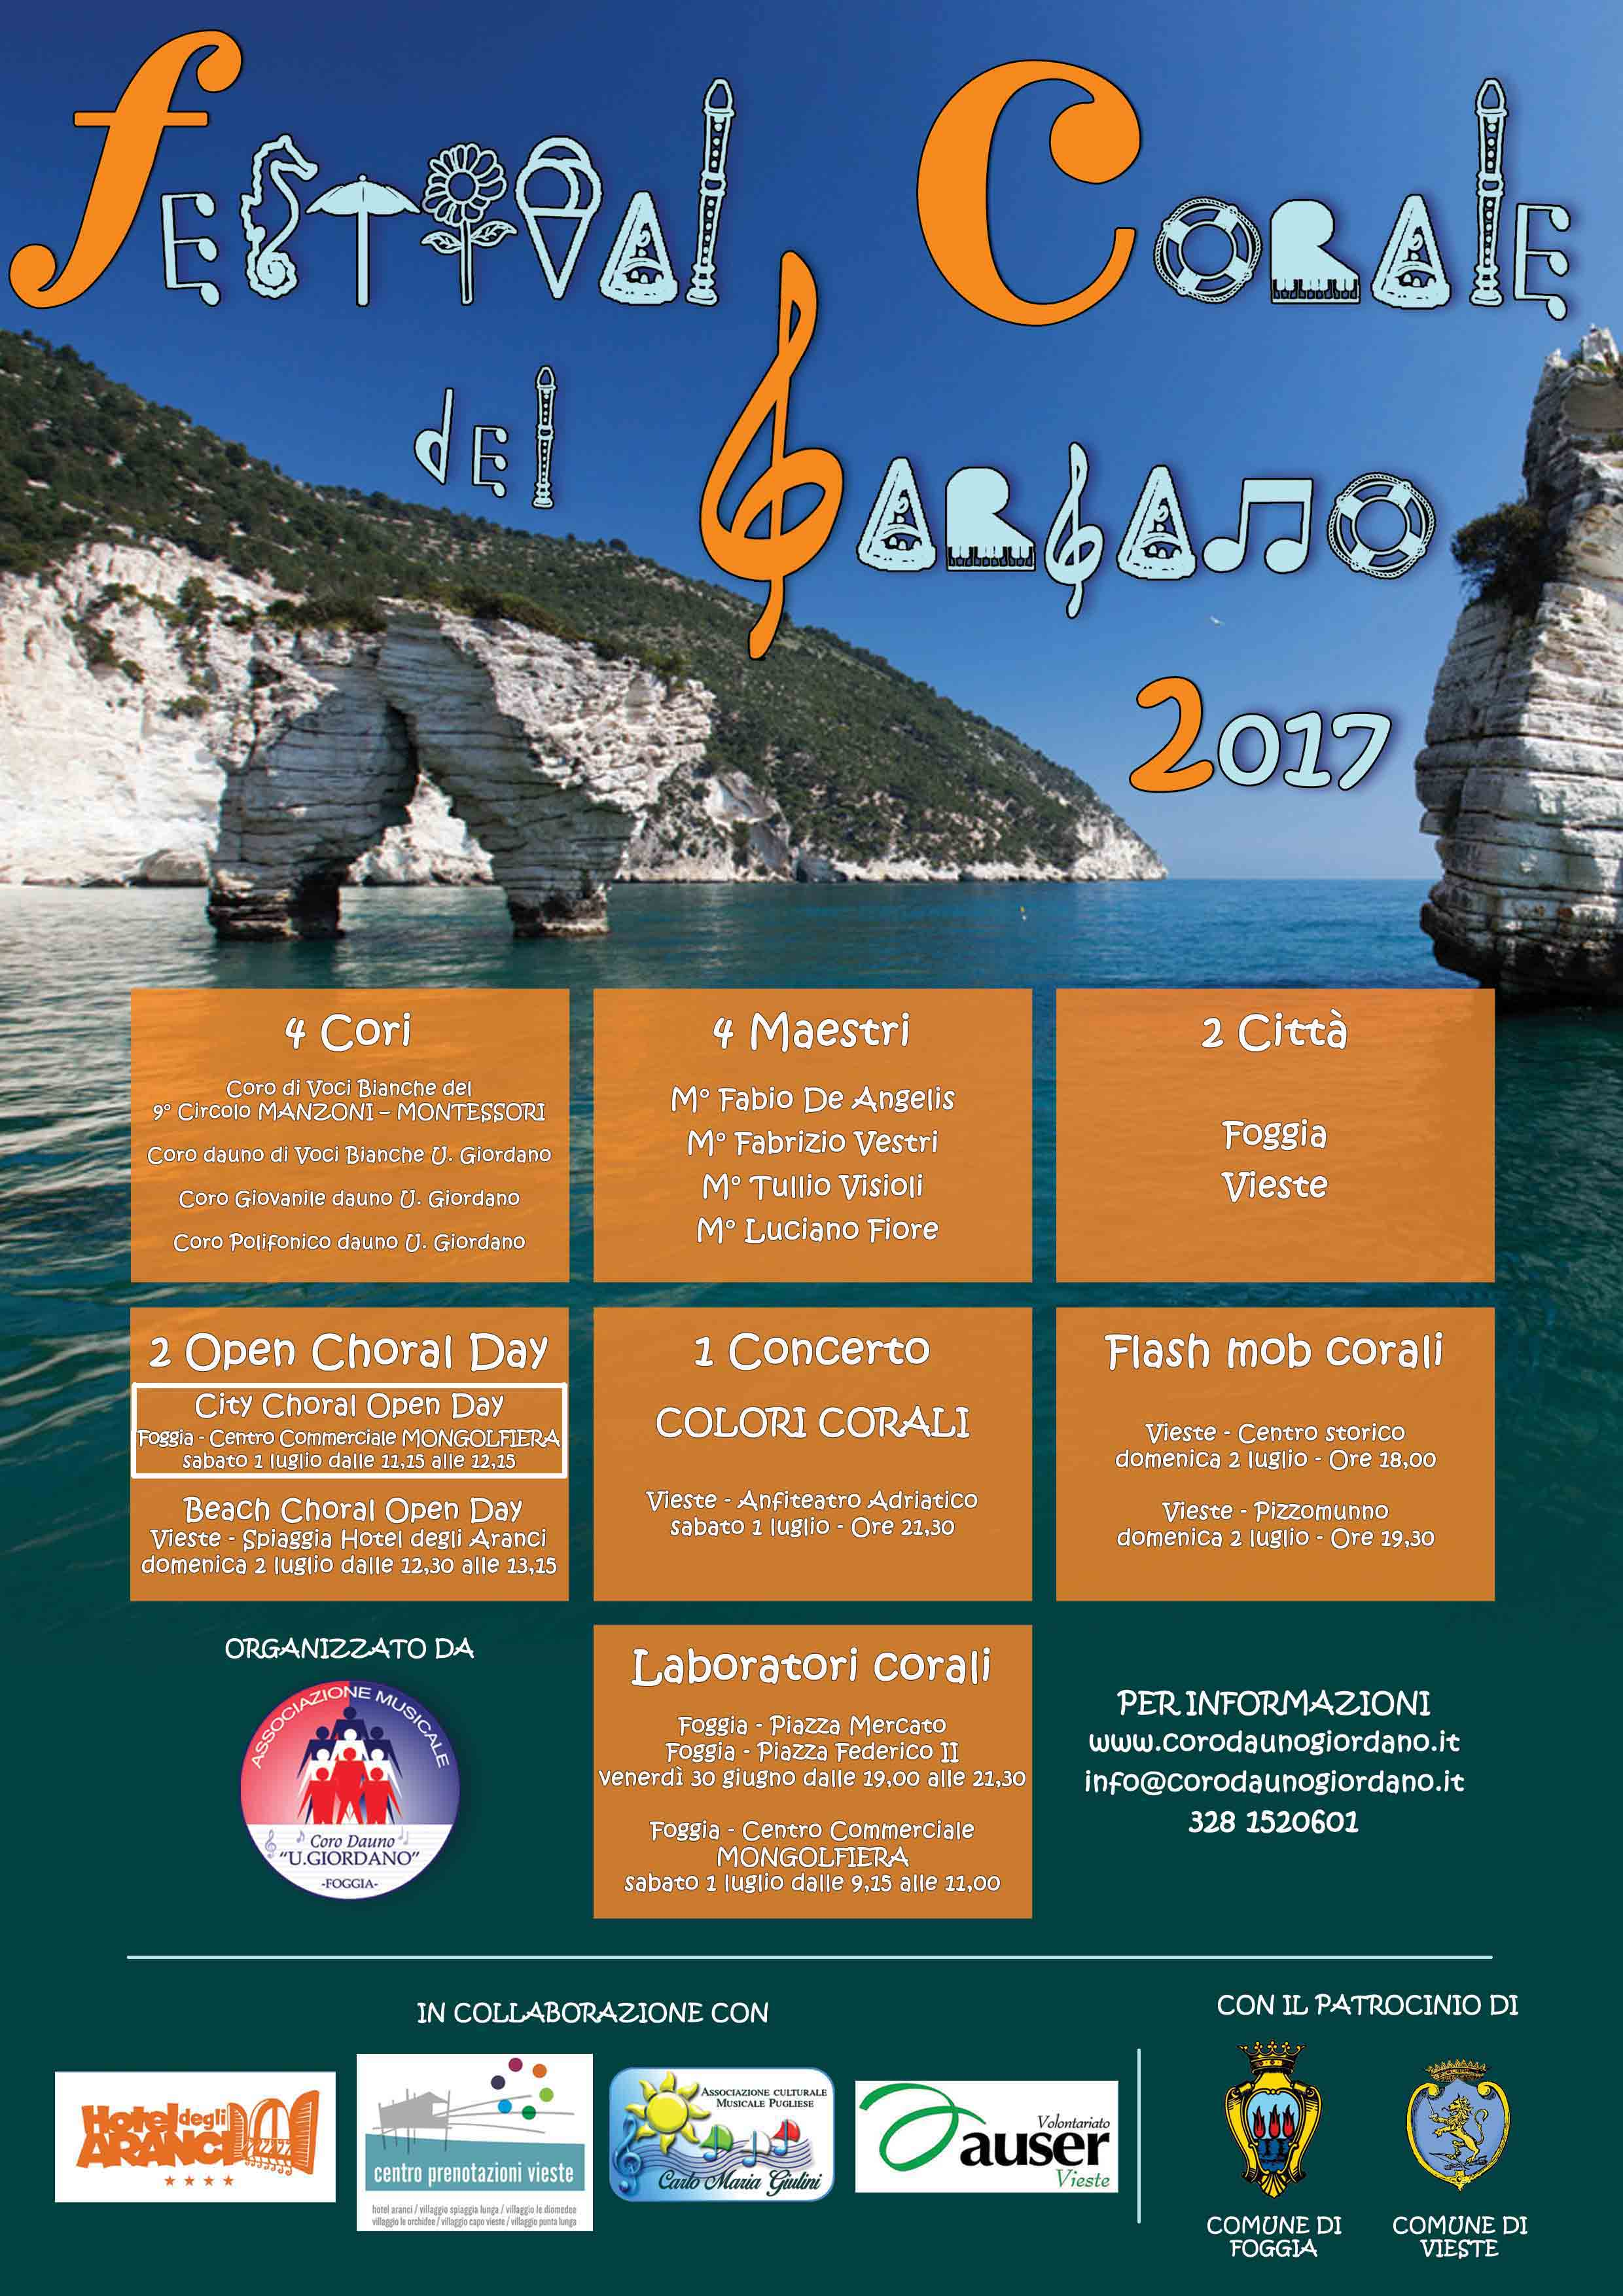 FESTIVAL CORALE DEL GARGANO 2017 - City Choral Open Day Mongolfiera